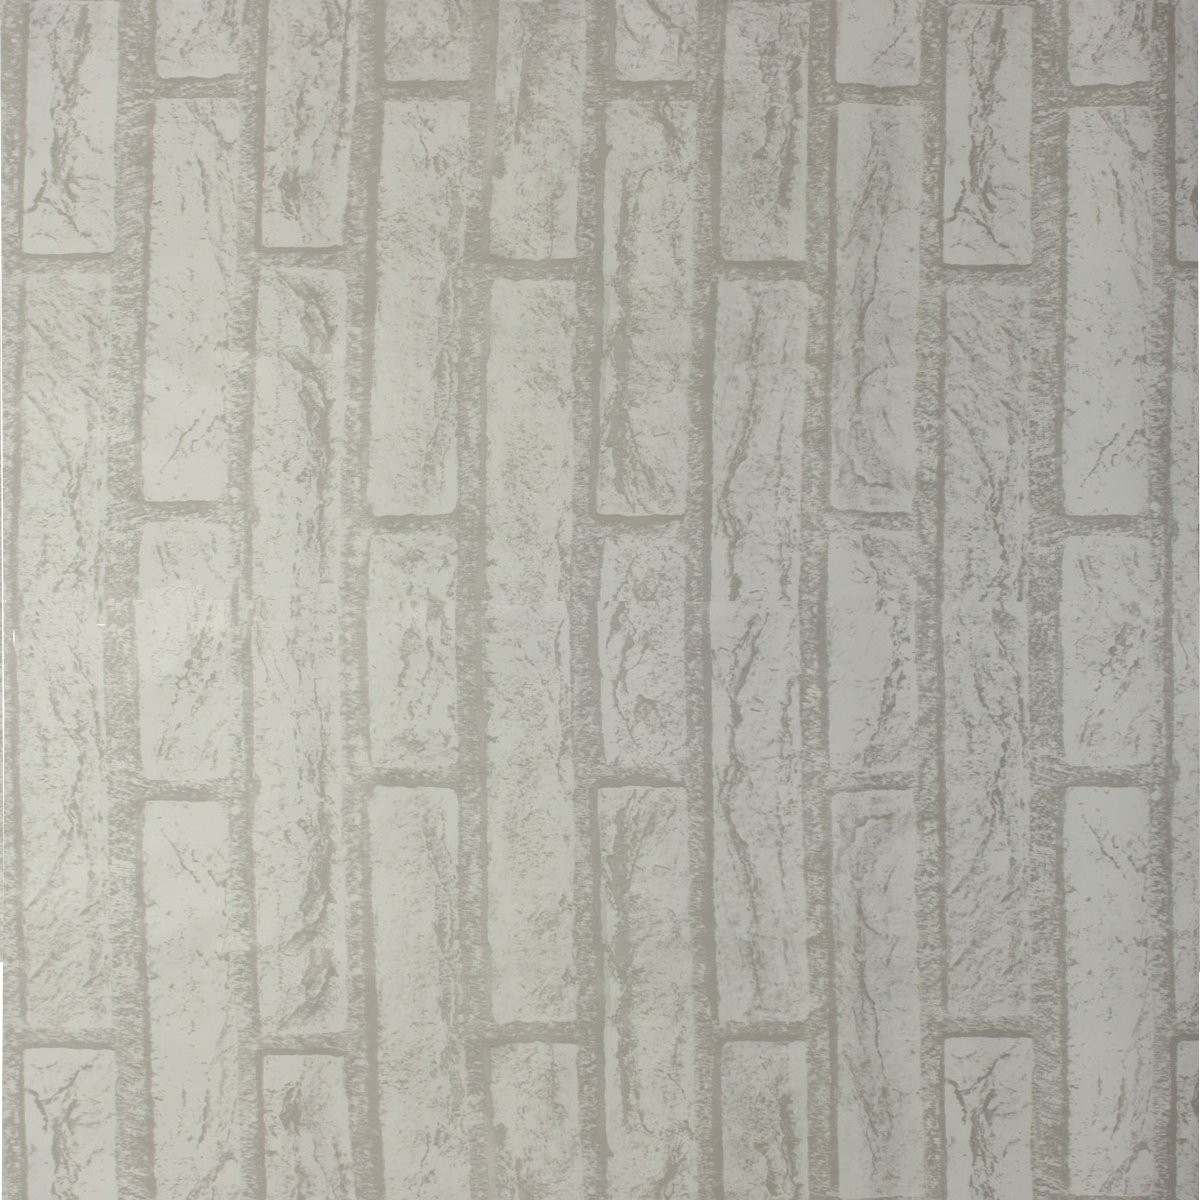 10m White Grey Brick Stone Prepasted Adhesive Contact Paper Wallpaper Roll Wall Art Decor